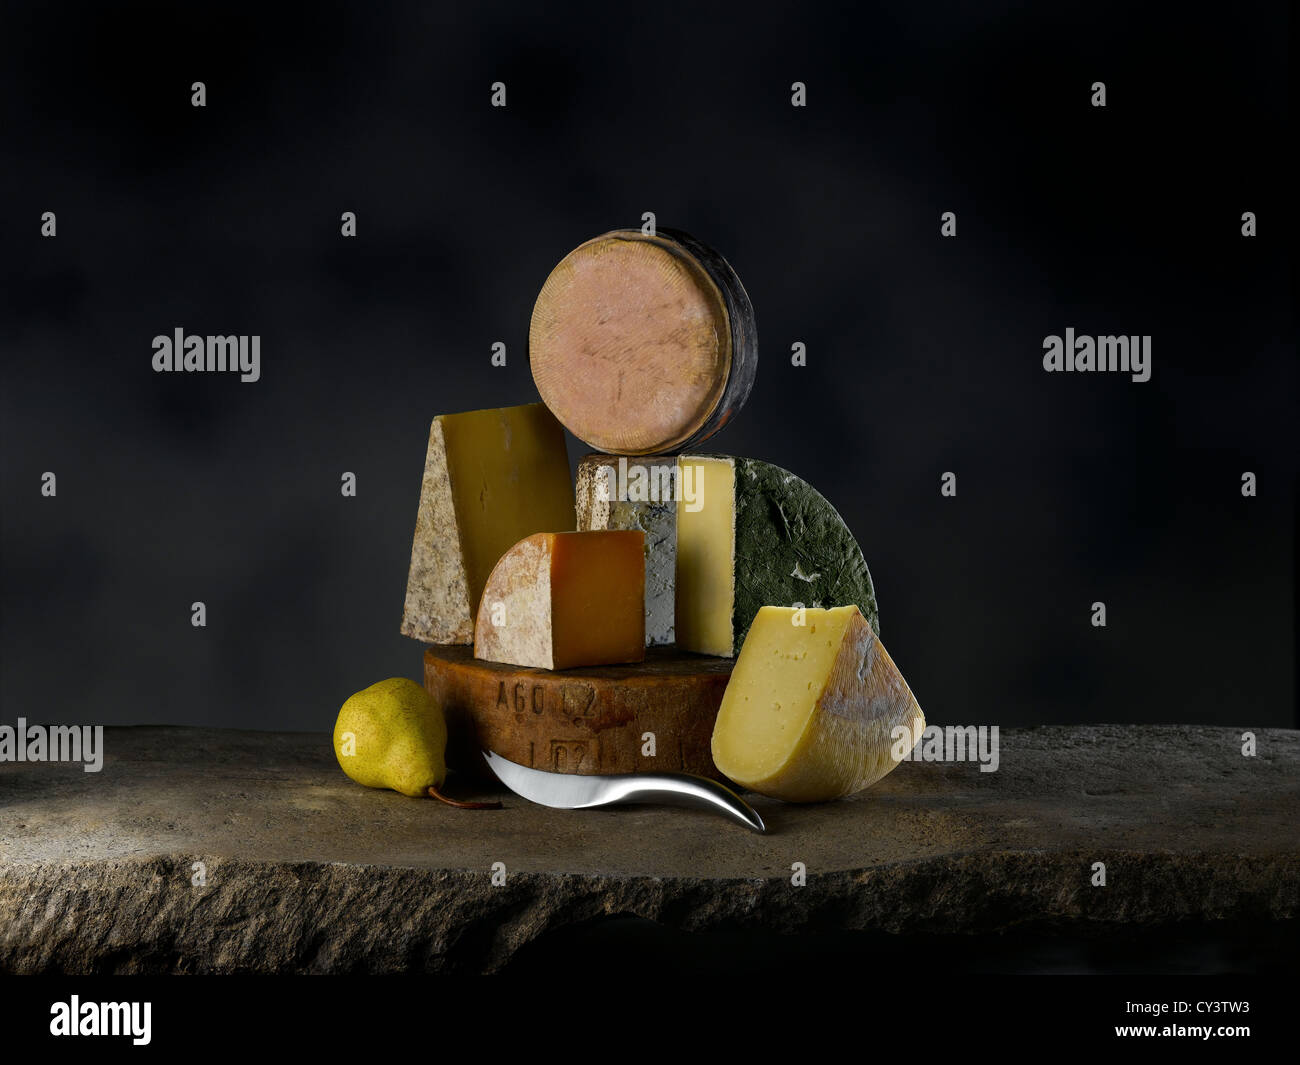 cheese selection - Stock Image